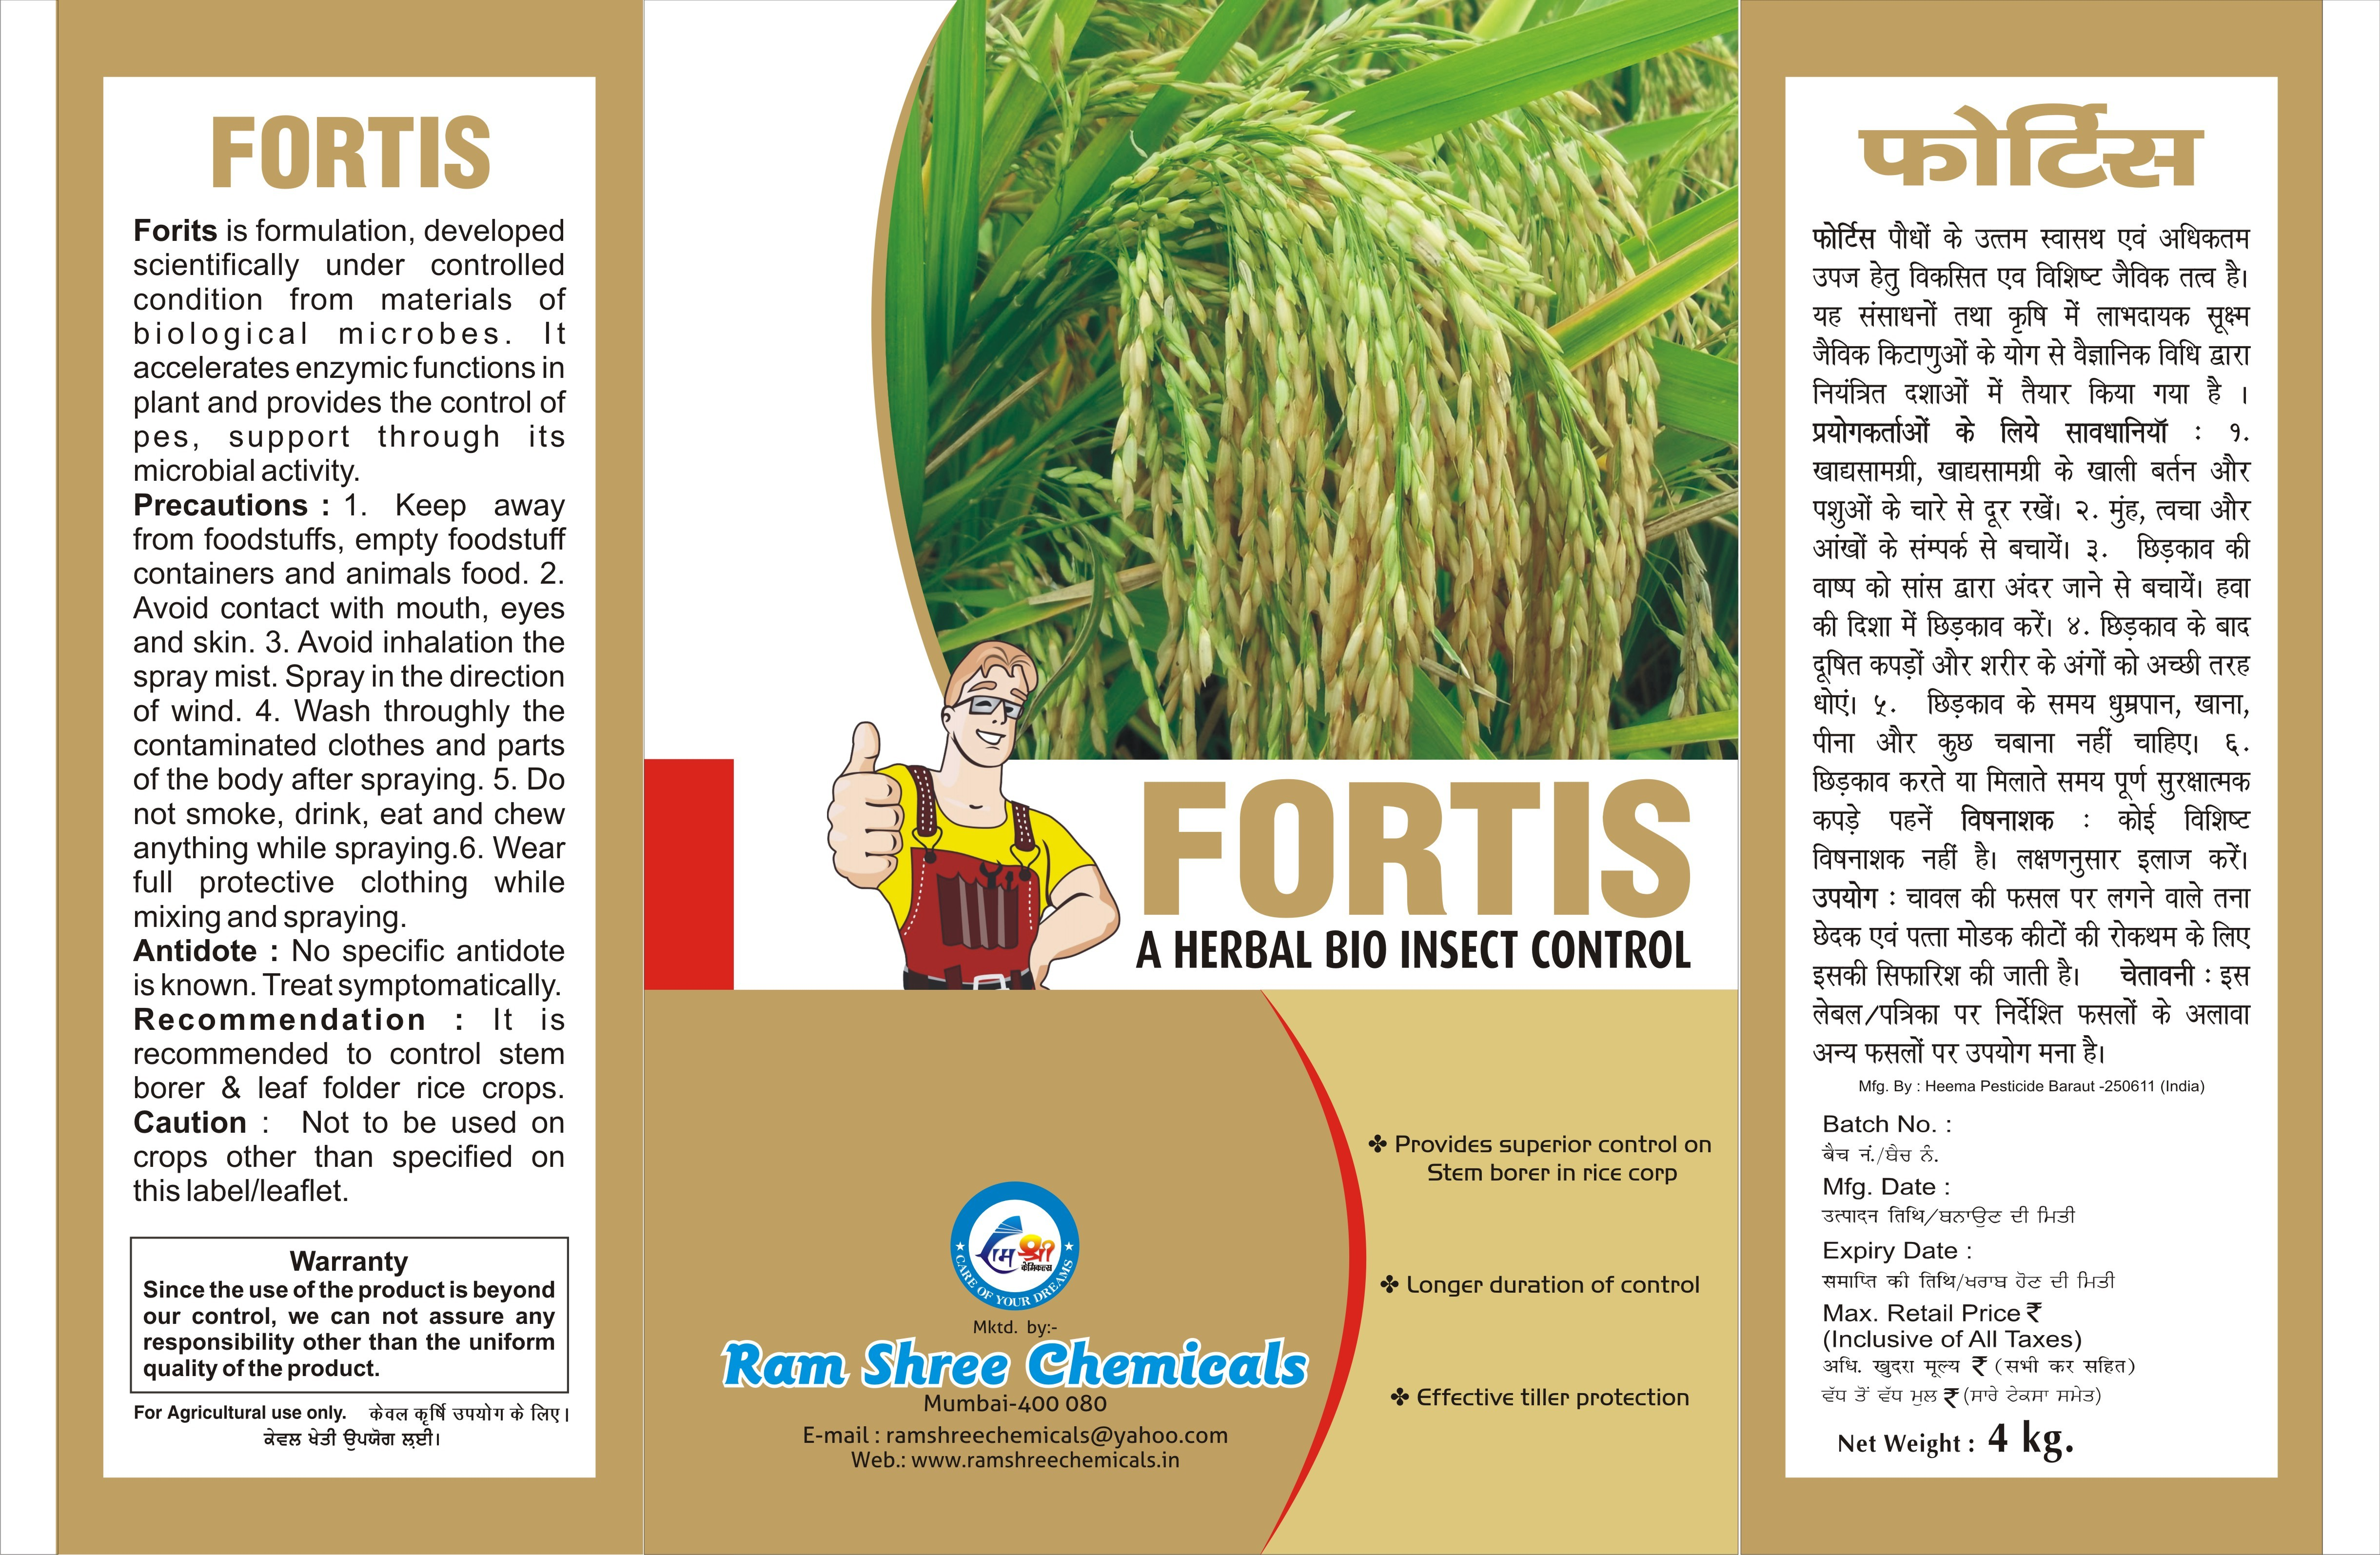 FORTIS-ORGANIC INSECTICIDES